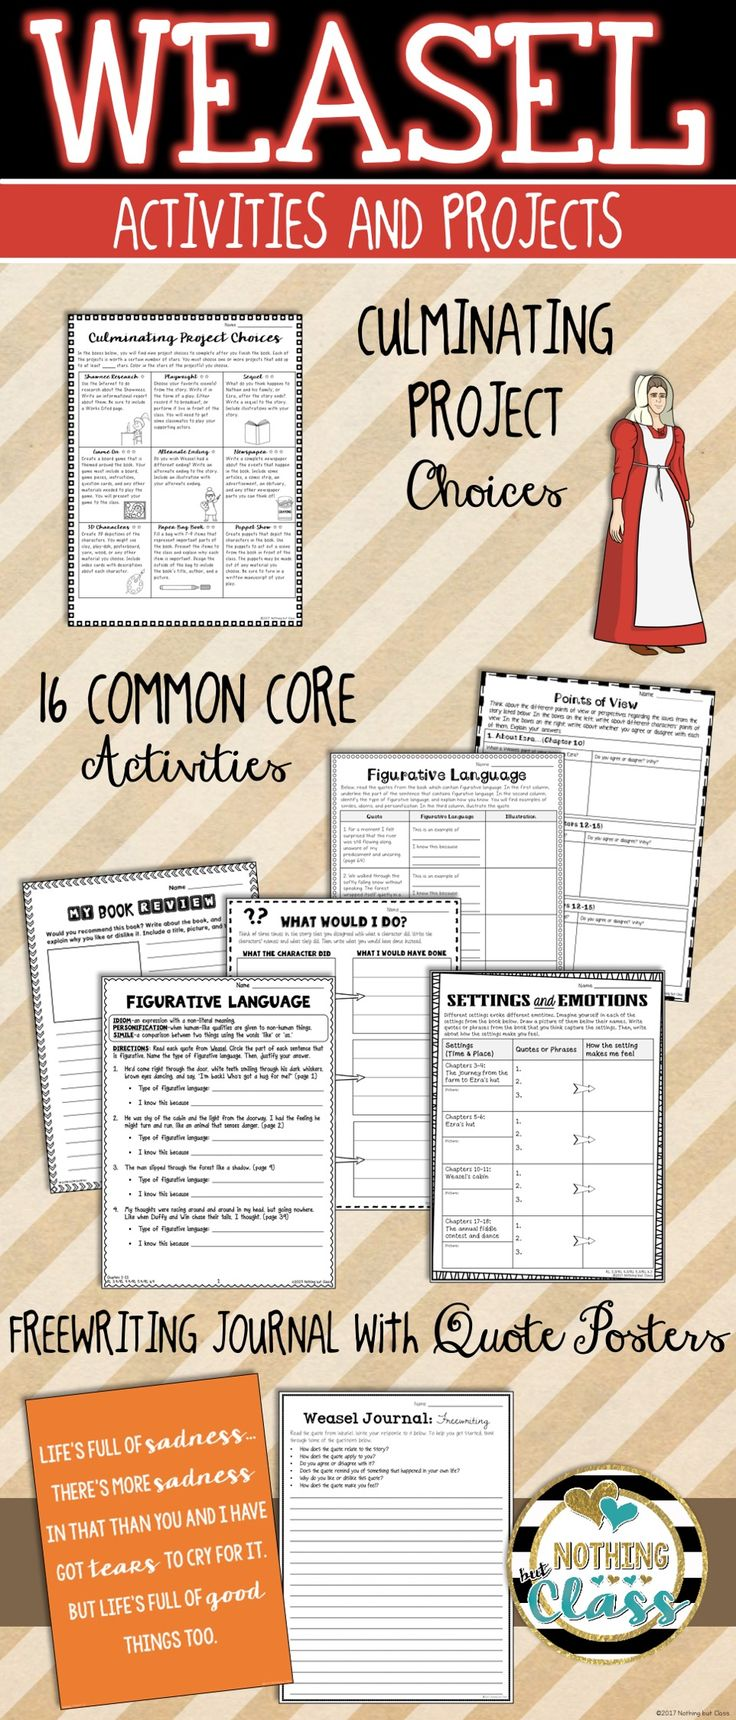 This activity packet for Weasel, by Cynthia DeFelice, contains 41 pages of creative, Common Core aligned resources.  Focus standards include character analysis, theme, figurative language, setting analysis, writing, and more. All Common Core activities have the Common Core code listed in the bottom corner, keeping both you and your students focused.   Perfect for whole classes, small groups, or even individuals.